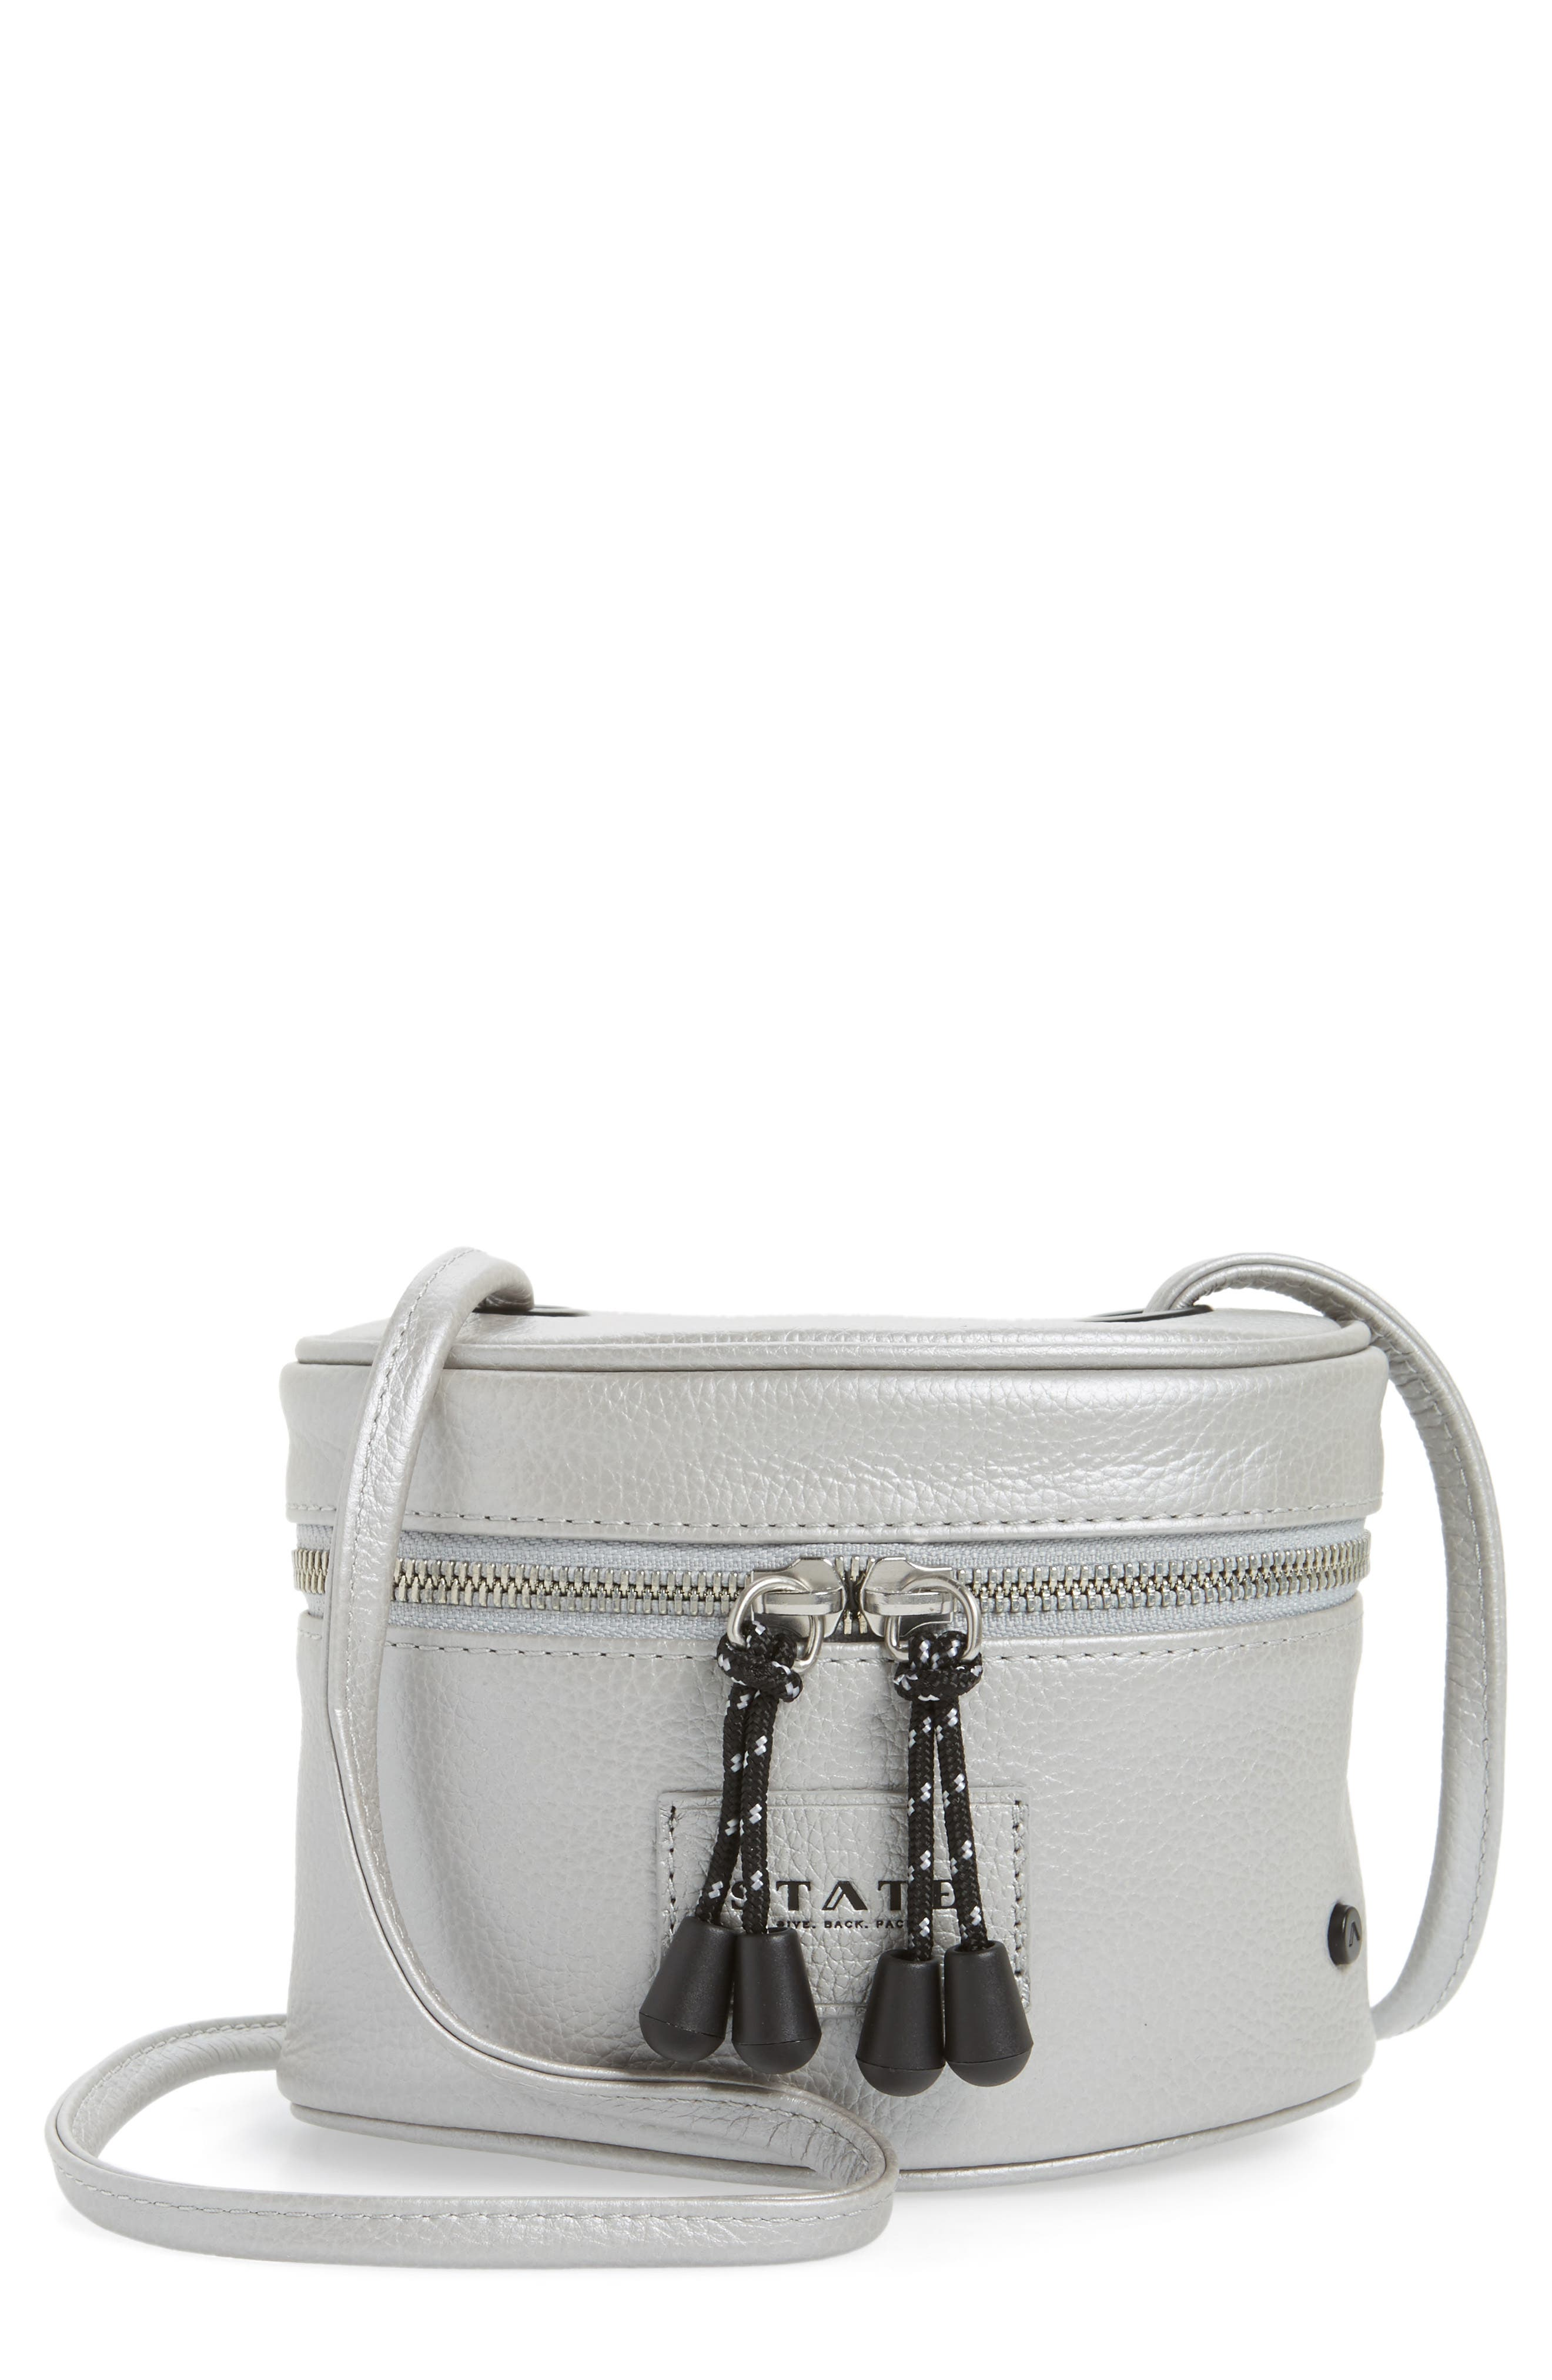 Main Image - STATE Bags Greenwood Autumn Leather Crossbody Bag